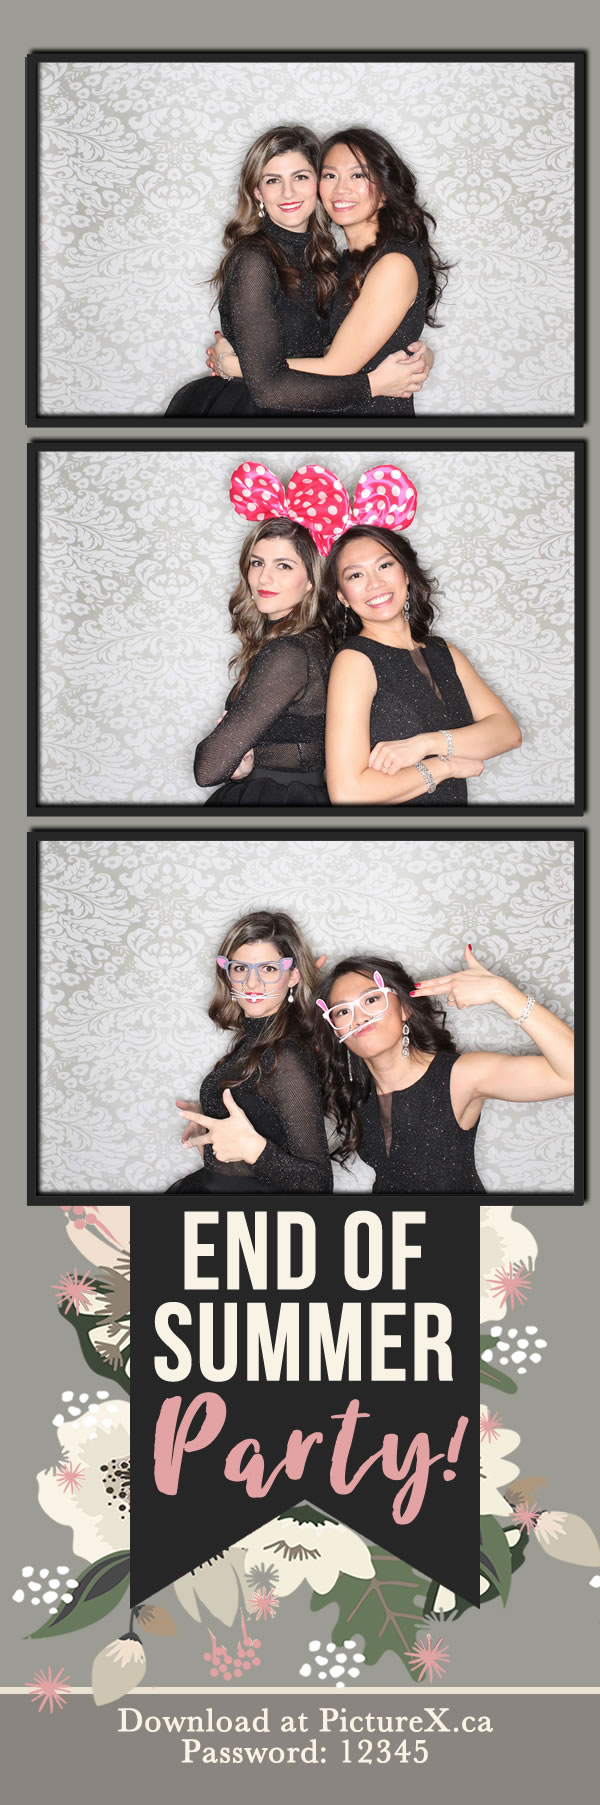 darkFloral photo booth print strip